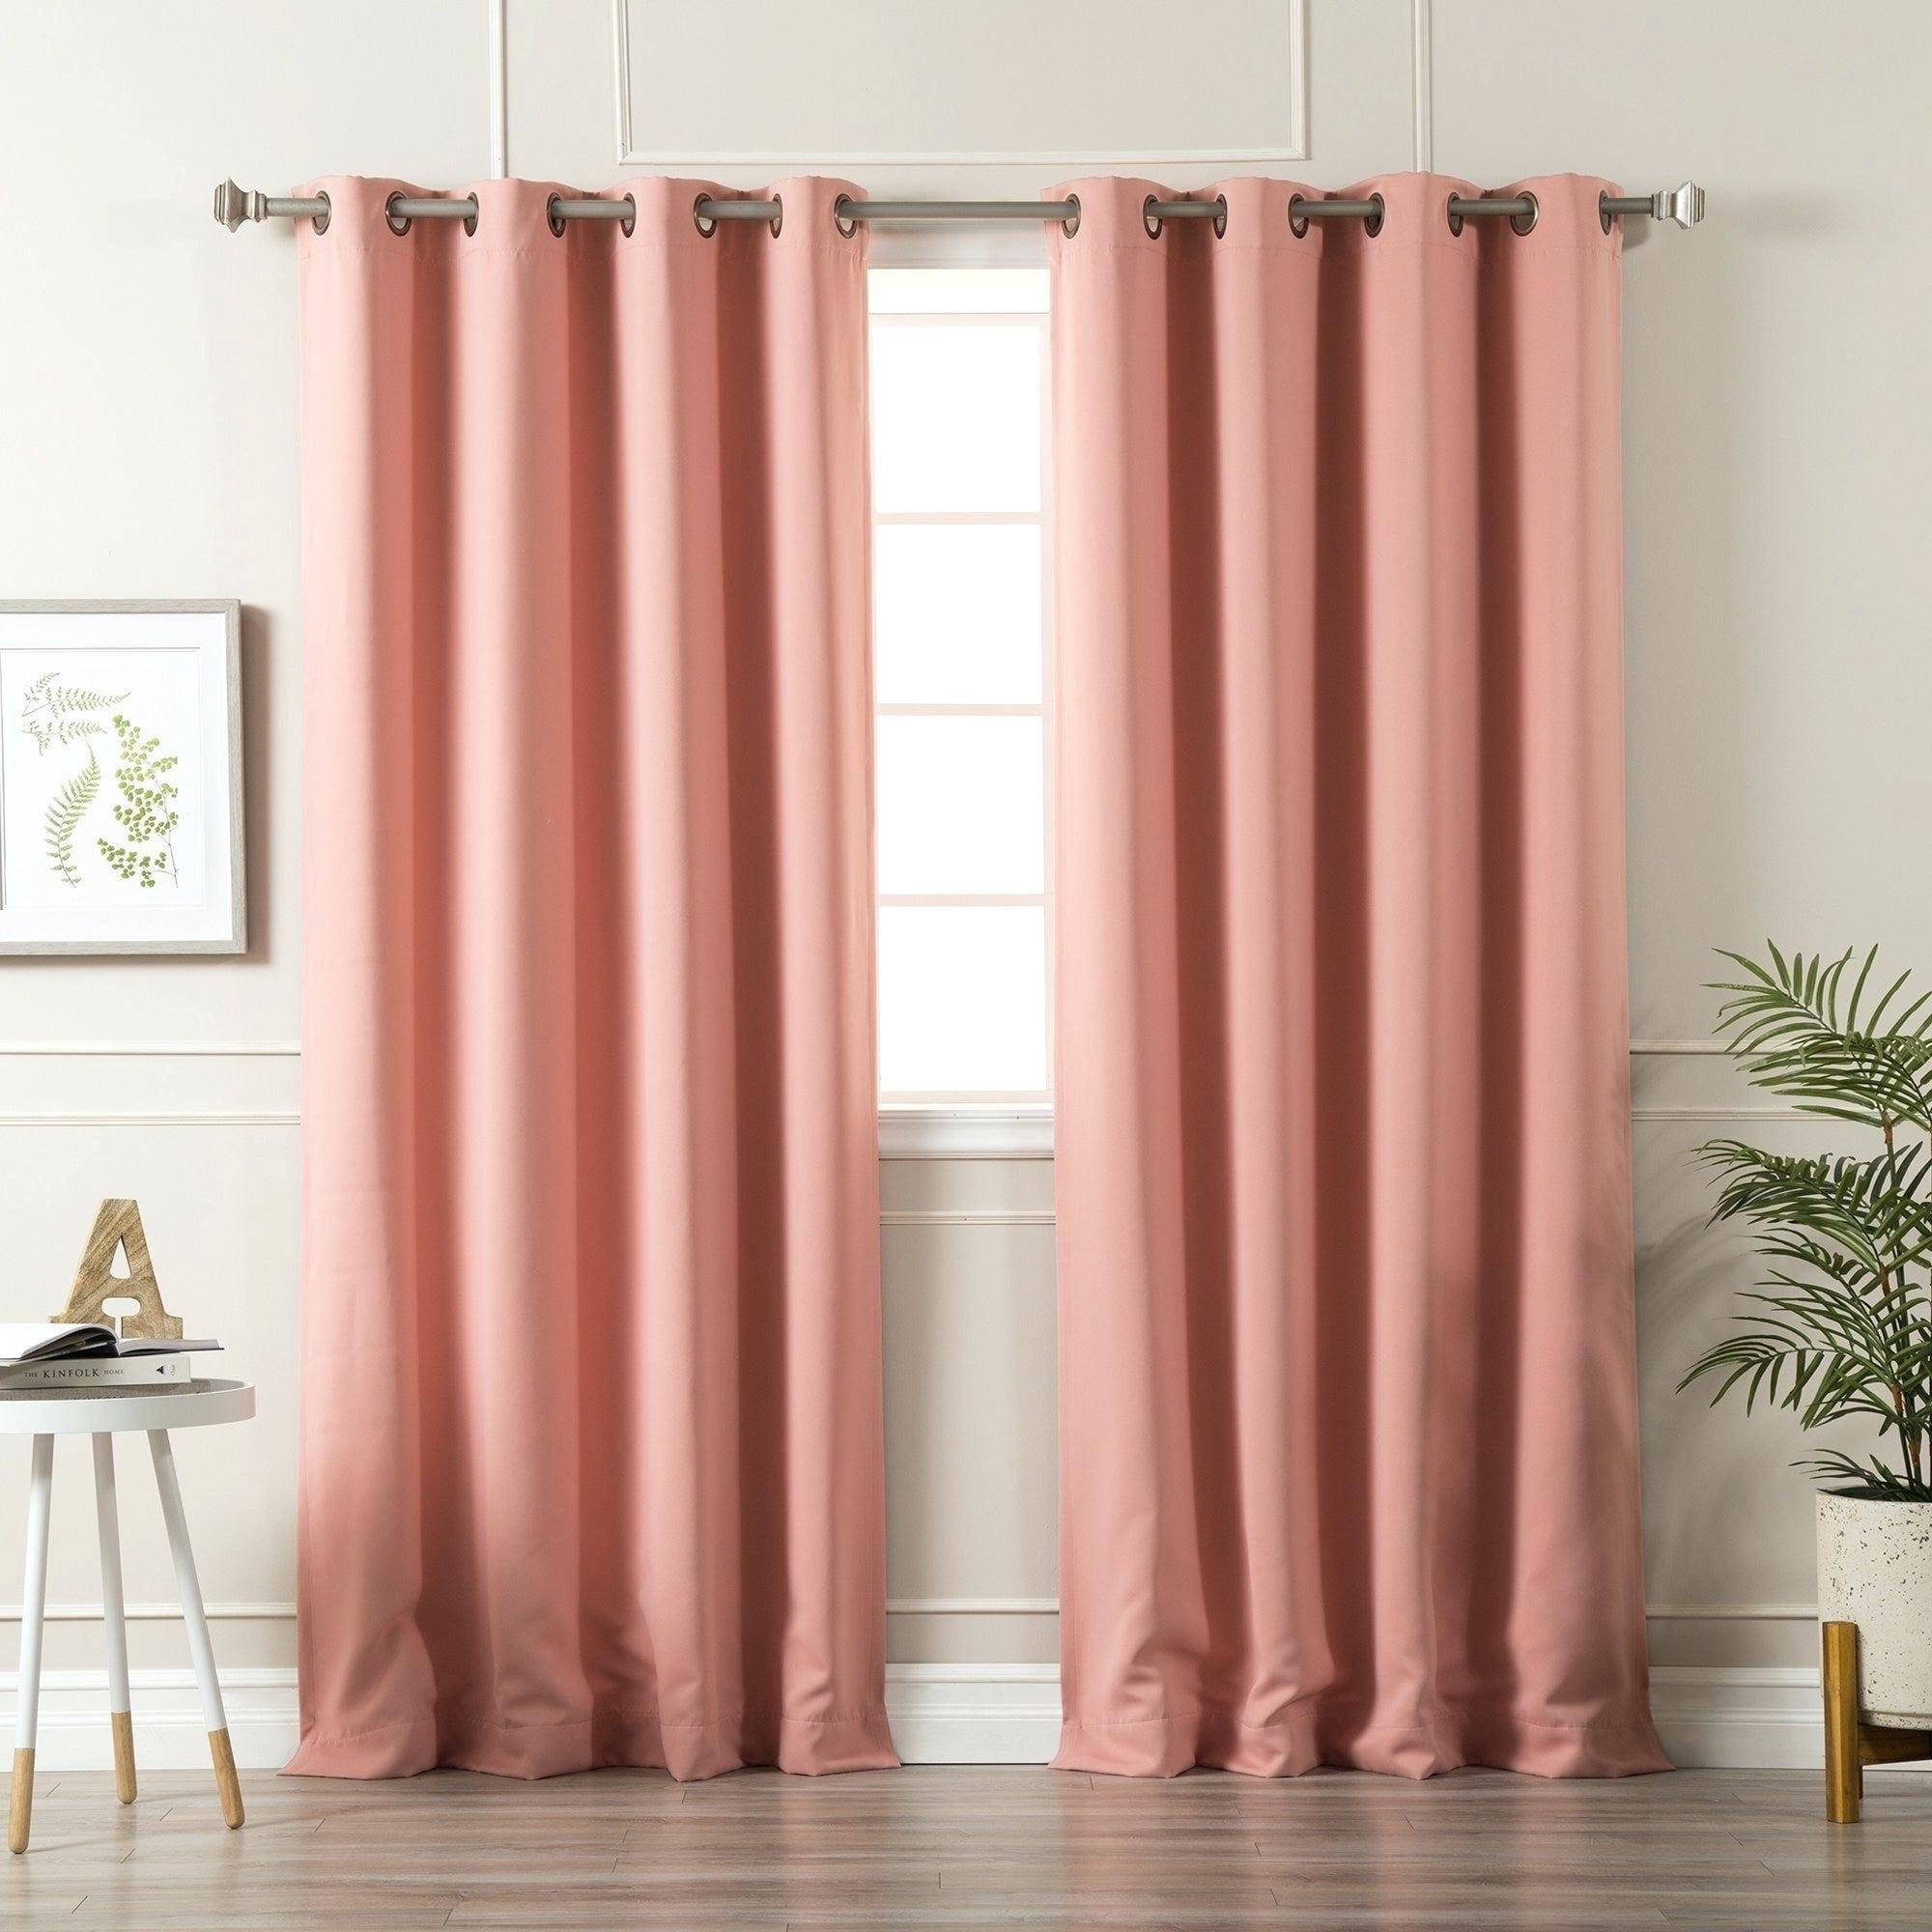 Cheap Grommet Blackout Curtains – Bluehorizonsinc Intended For Solid Thermal Insulated Blackout Curtain Panel Pairs (View 16 of 30)